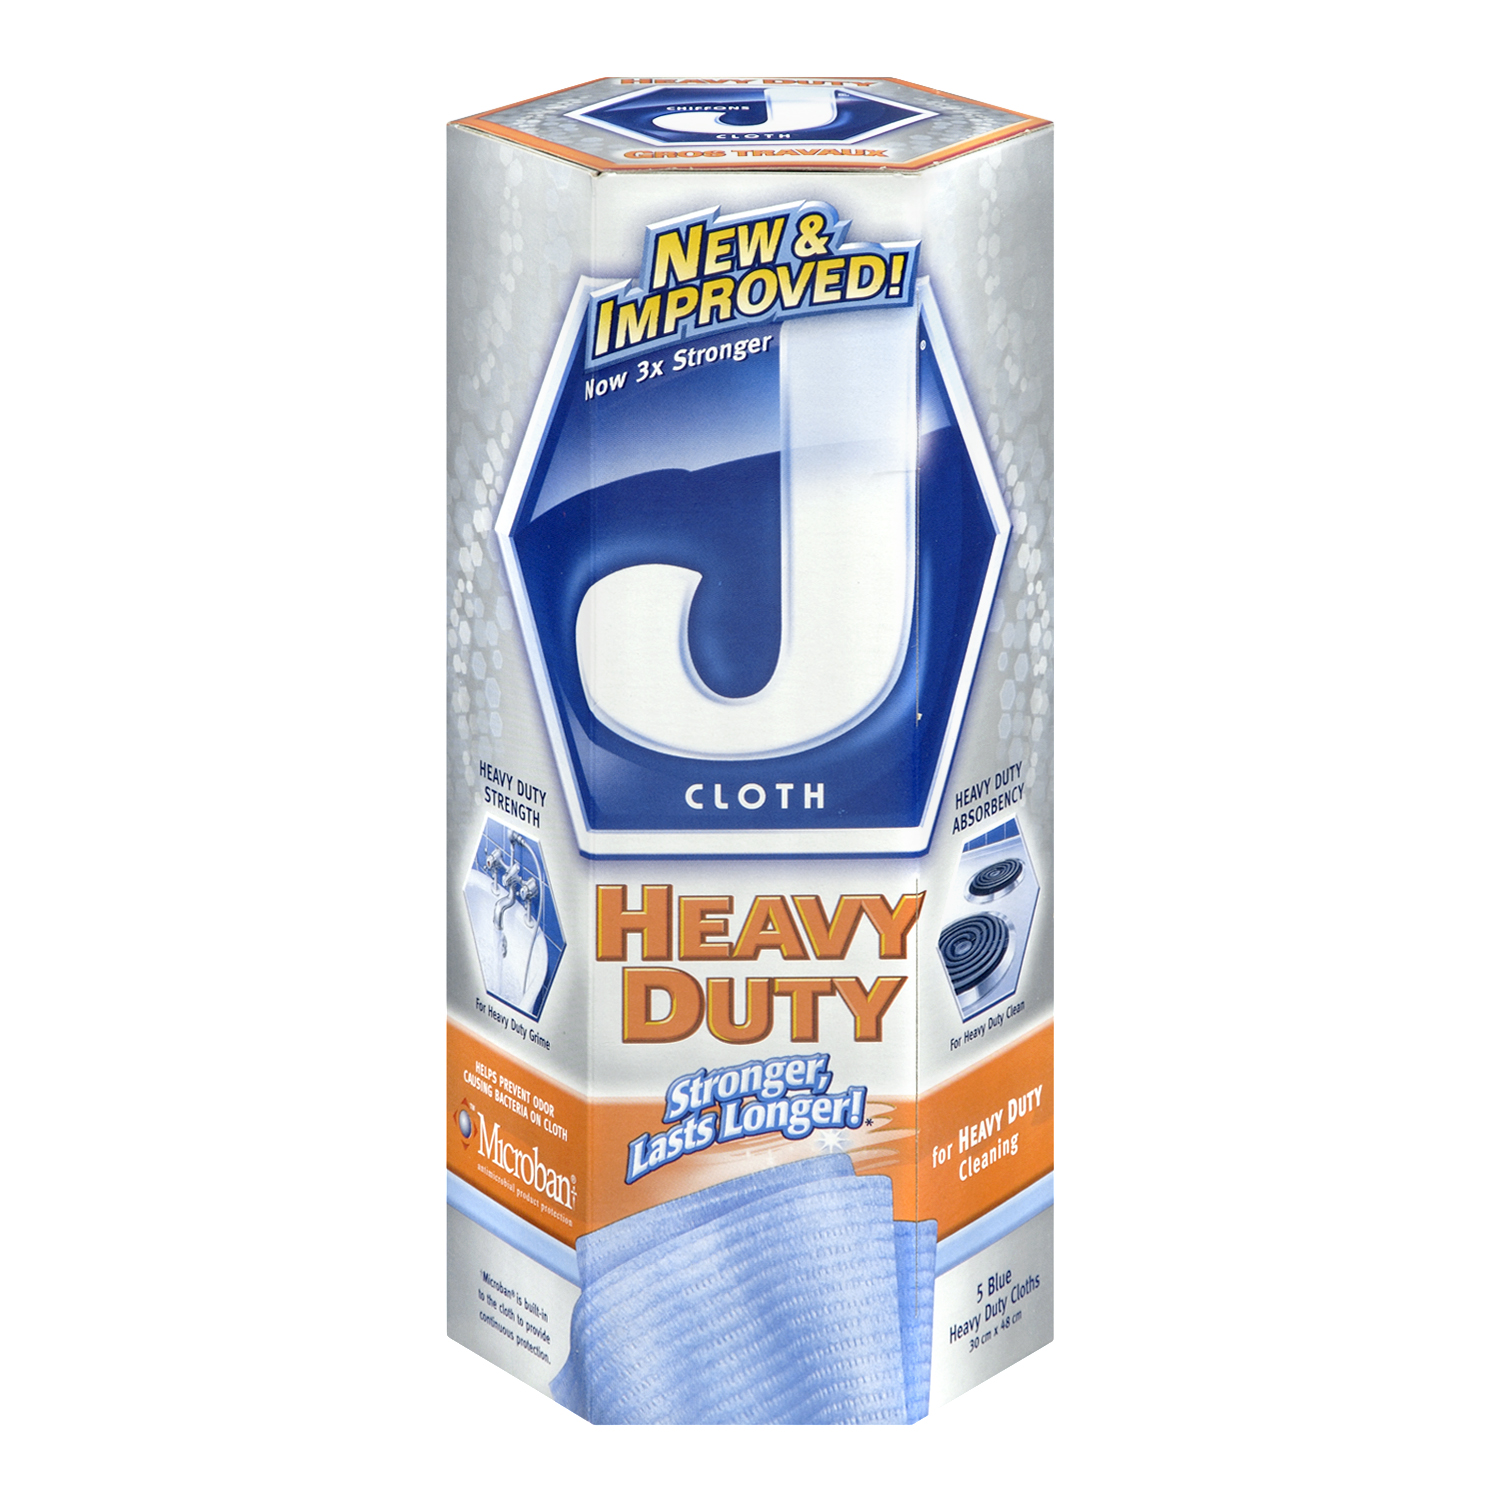 J Cloth Heavy Duty Cleaning Cloths